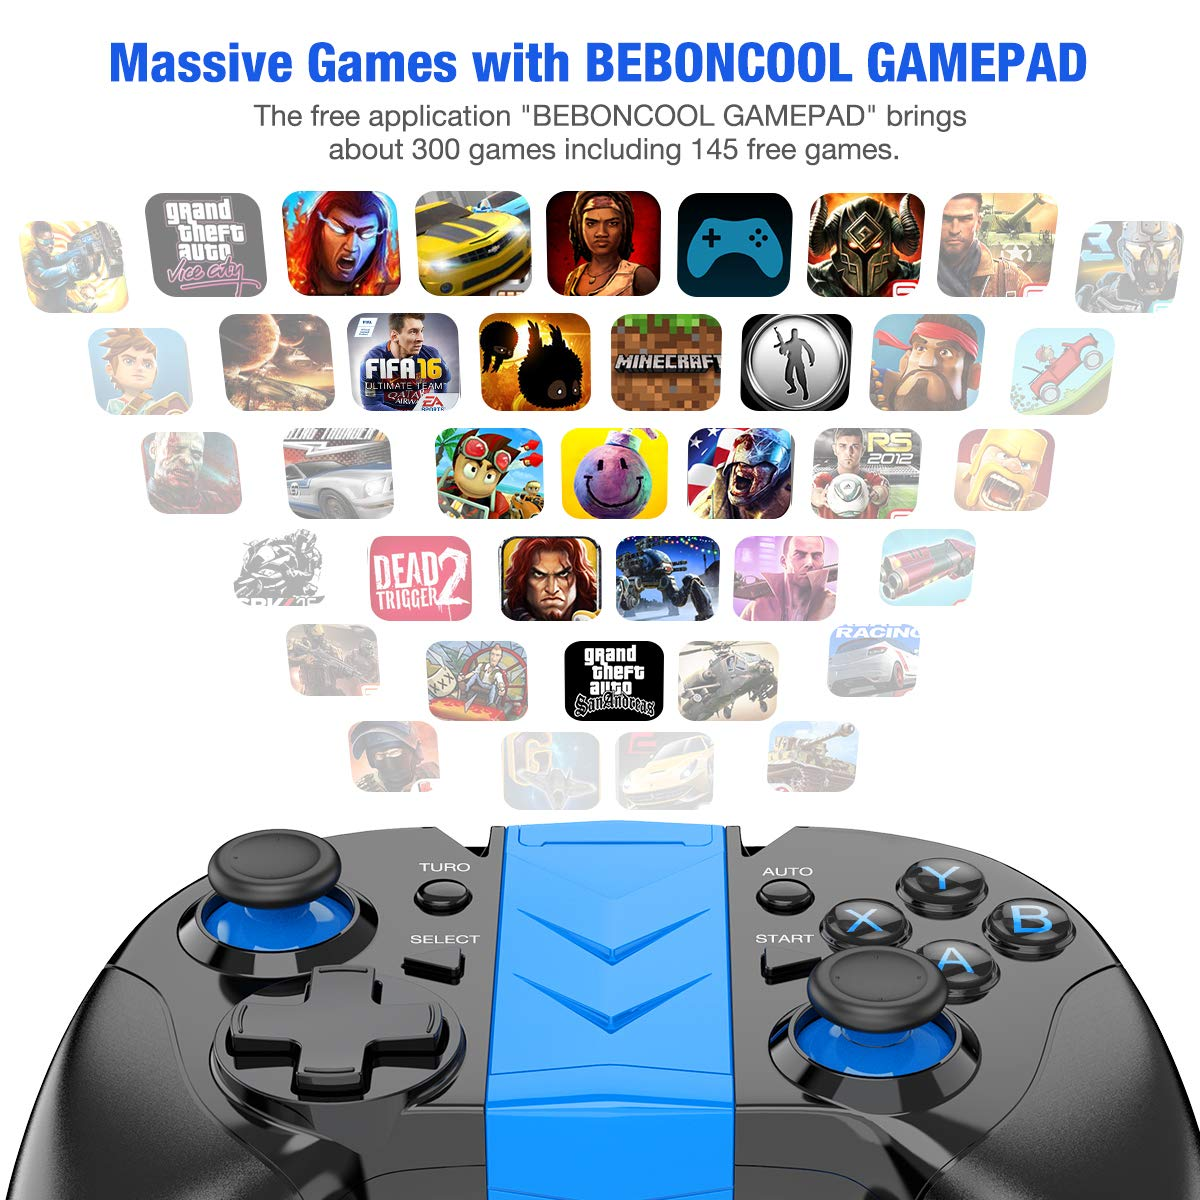 Android Wireless Game Controller, BEBONCOOL Gamepad Remote (for Android  Phone/Tablet / Samsung Gear VR/Emulator) Gear VR Gamepad Controller  Compatible